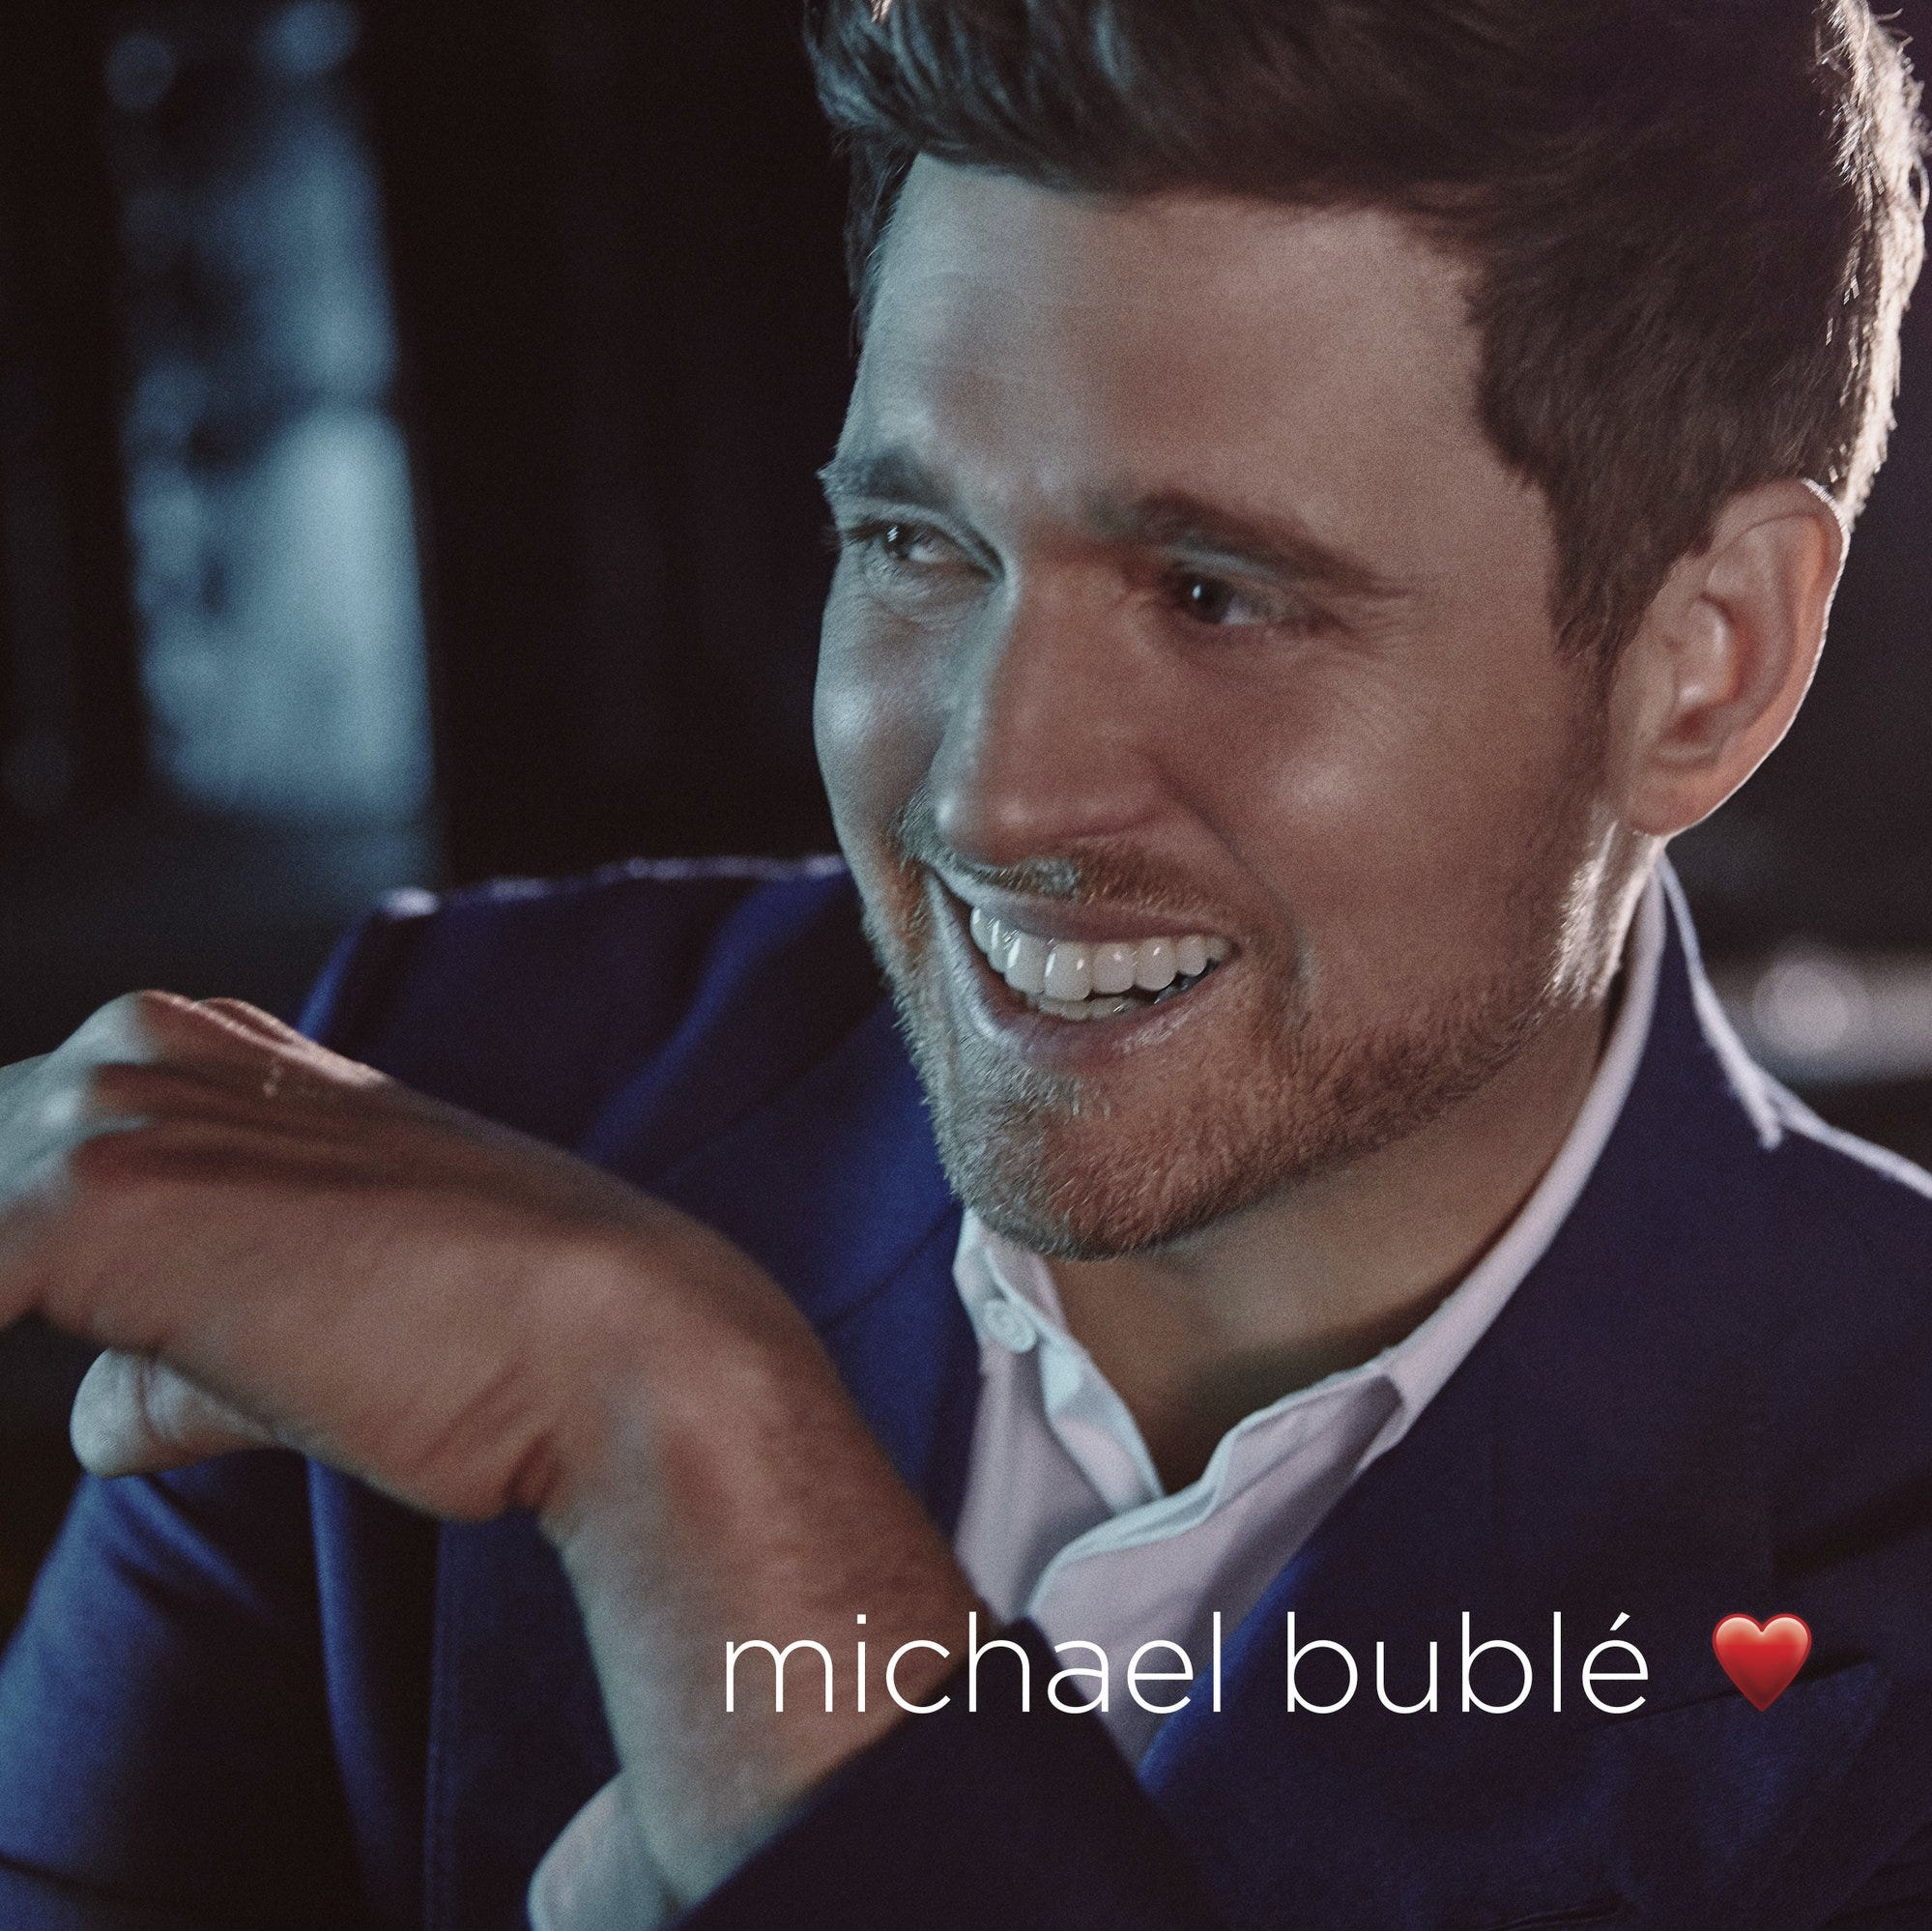 Michael Buble bounces back with 'Love'; Mariah Carey yields to her strengths on 'Caution'